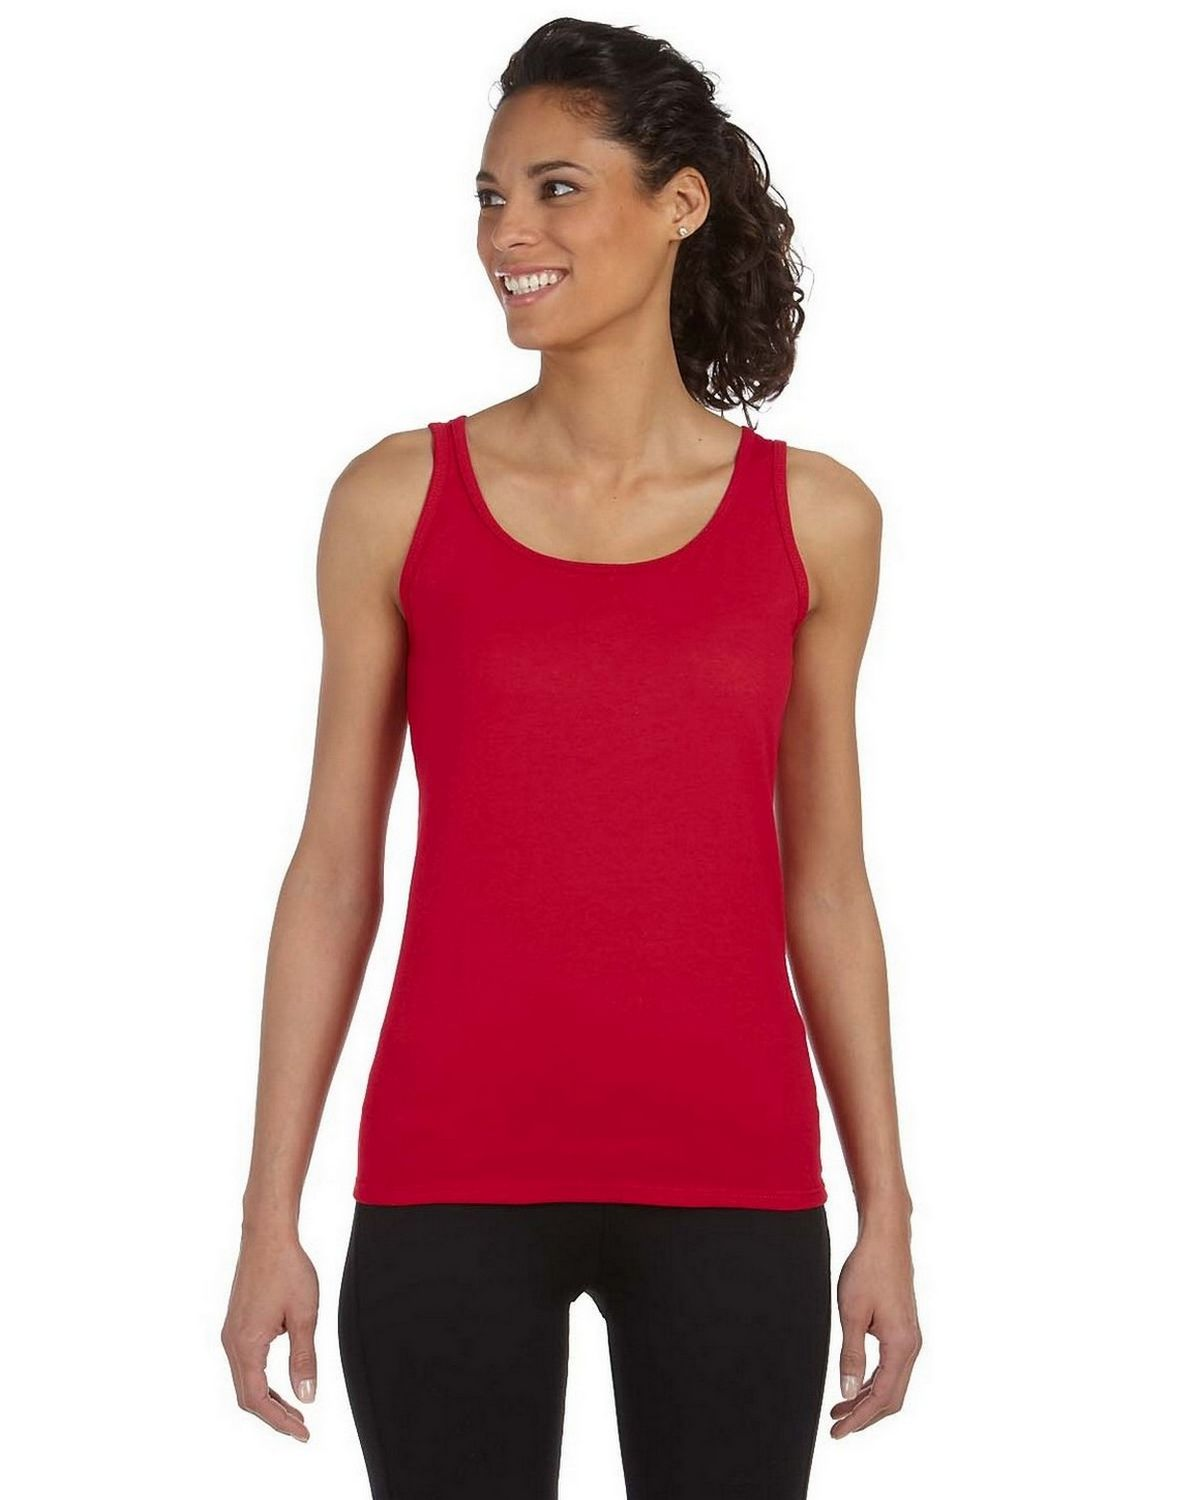 Gildan G642L Ladies SoftStyle Junior Fit Tank Top - Cherry Red - L G642L